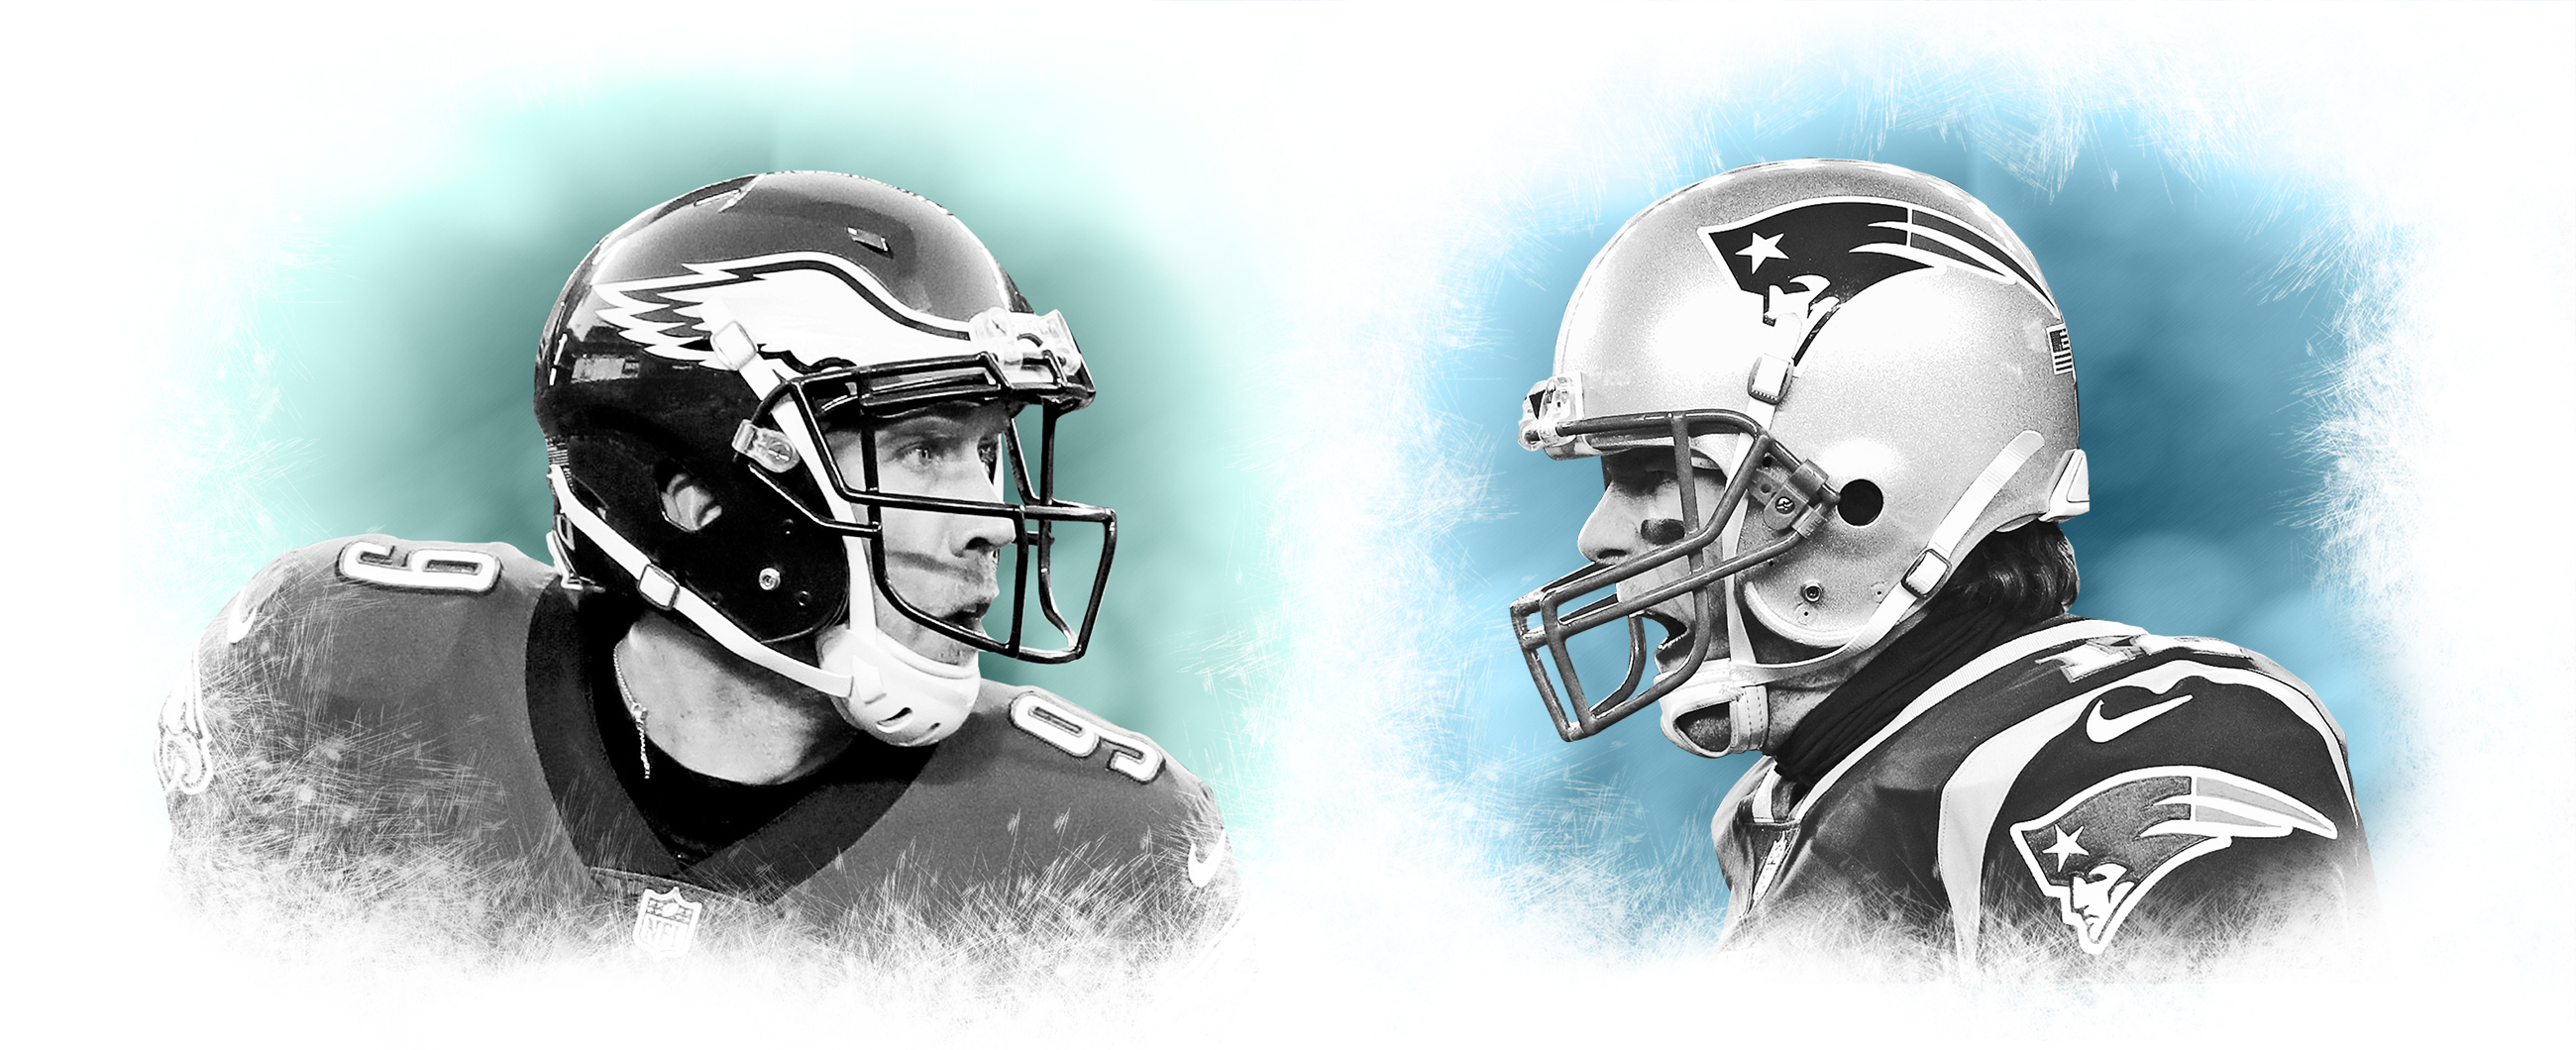 Key Stats And Players To Watch In Super Bowl